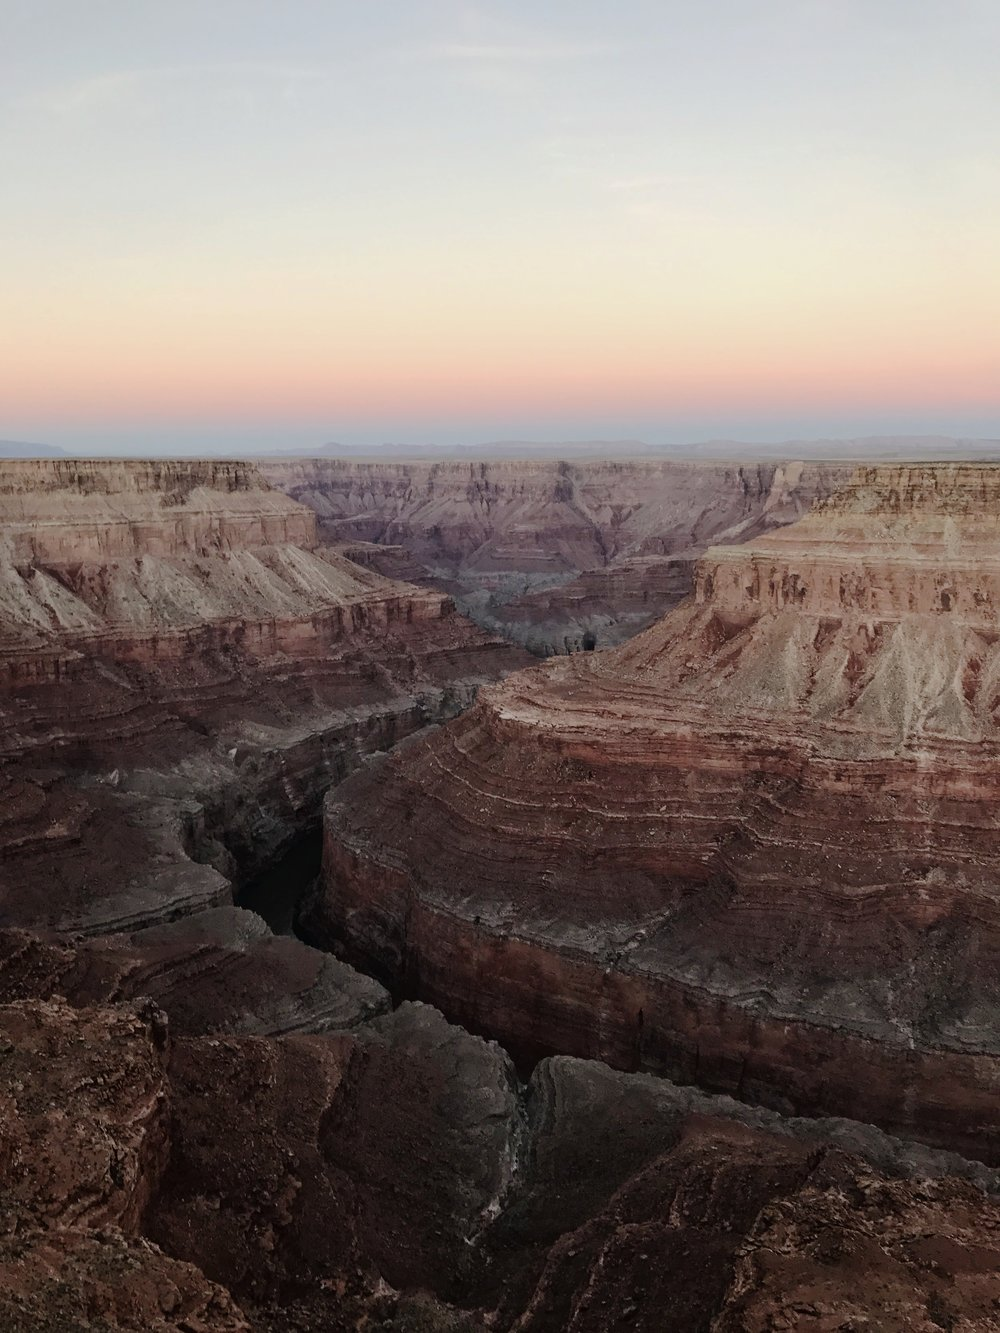 Overlooking Grand Canyon from the proposed Marble Canyon Dam site. Photo by Joseph Holway.